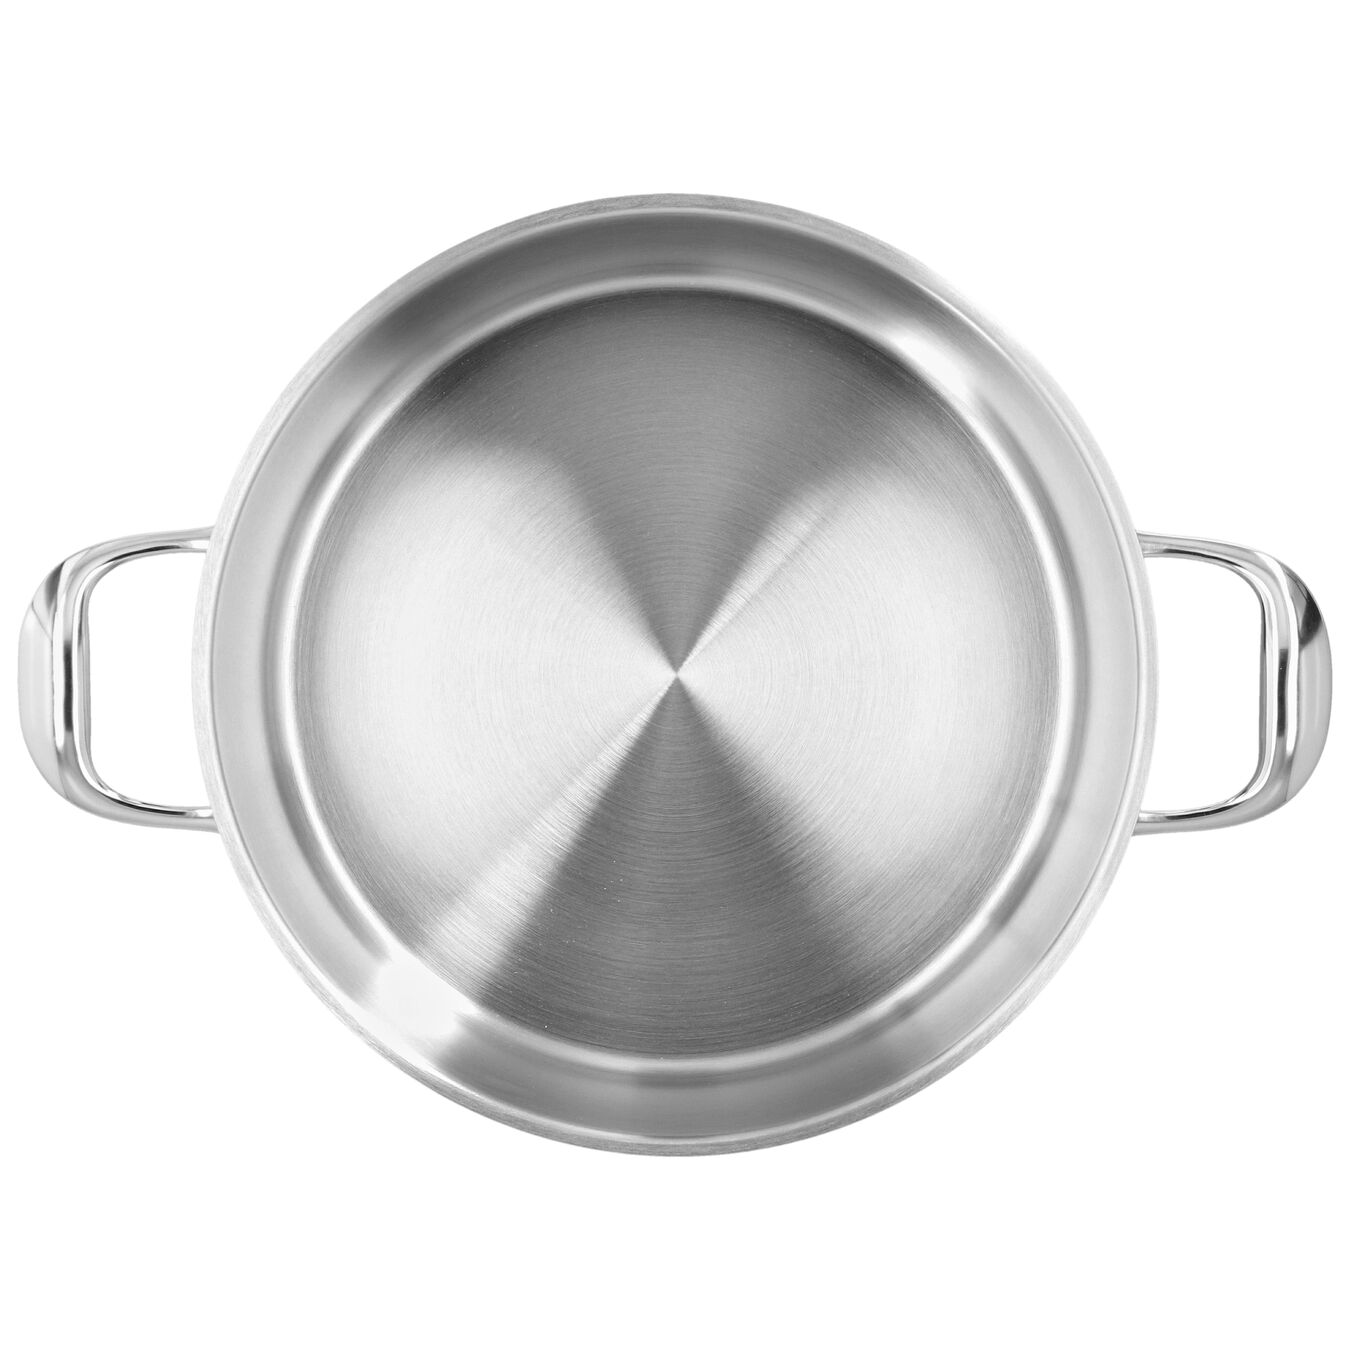 5.25 l Stew pot with lid,,large 5